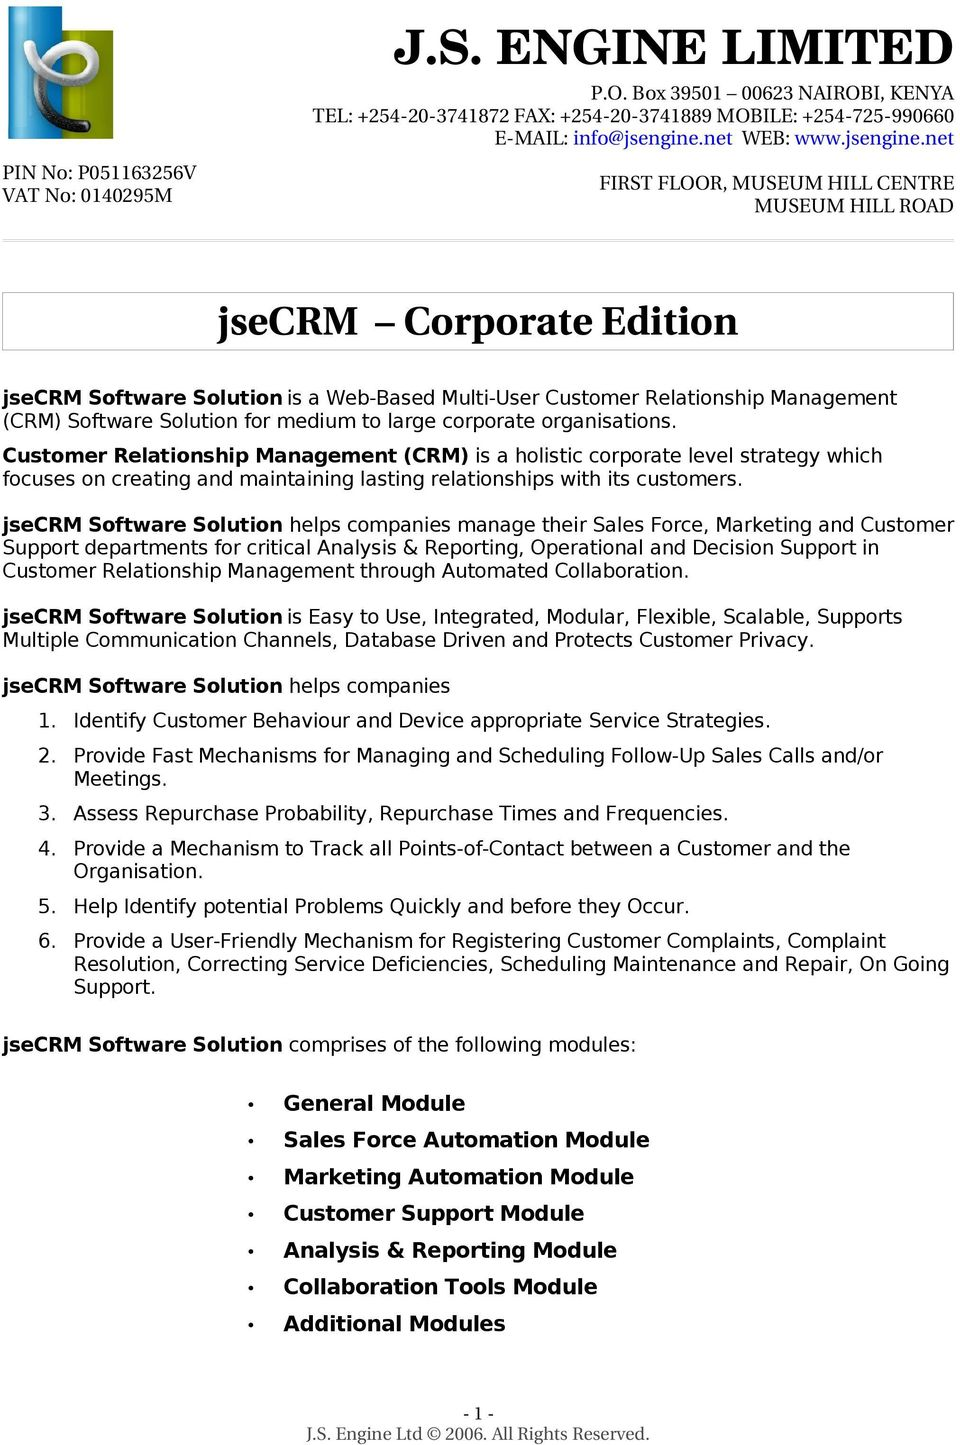 net FIRST FLOOR, MUSEUM HILL CENTRE MUSEUM HILL ROAD jsecrm Corporate Edition jsecrm Software Solution is a Web-Based Multi-User Customer Relationship Management (CRM) Software Solution for medium to